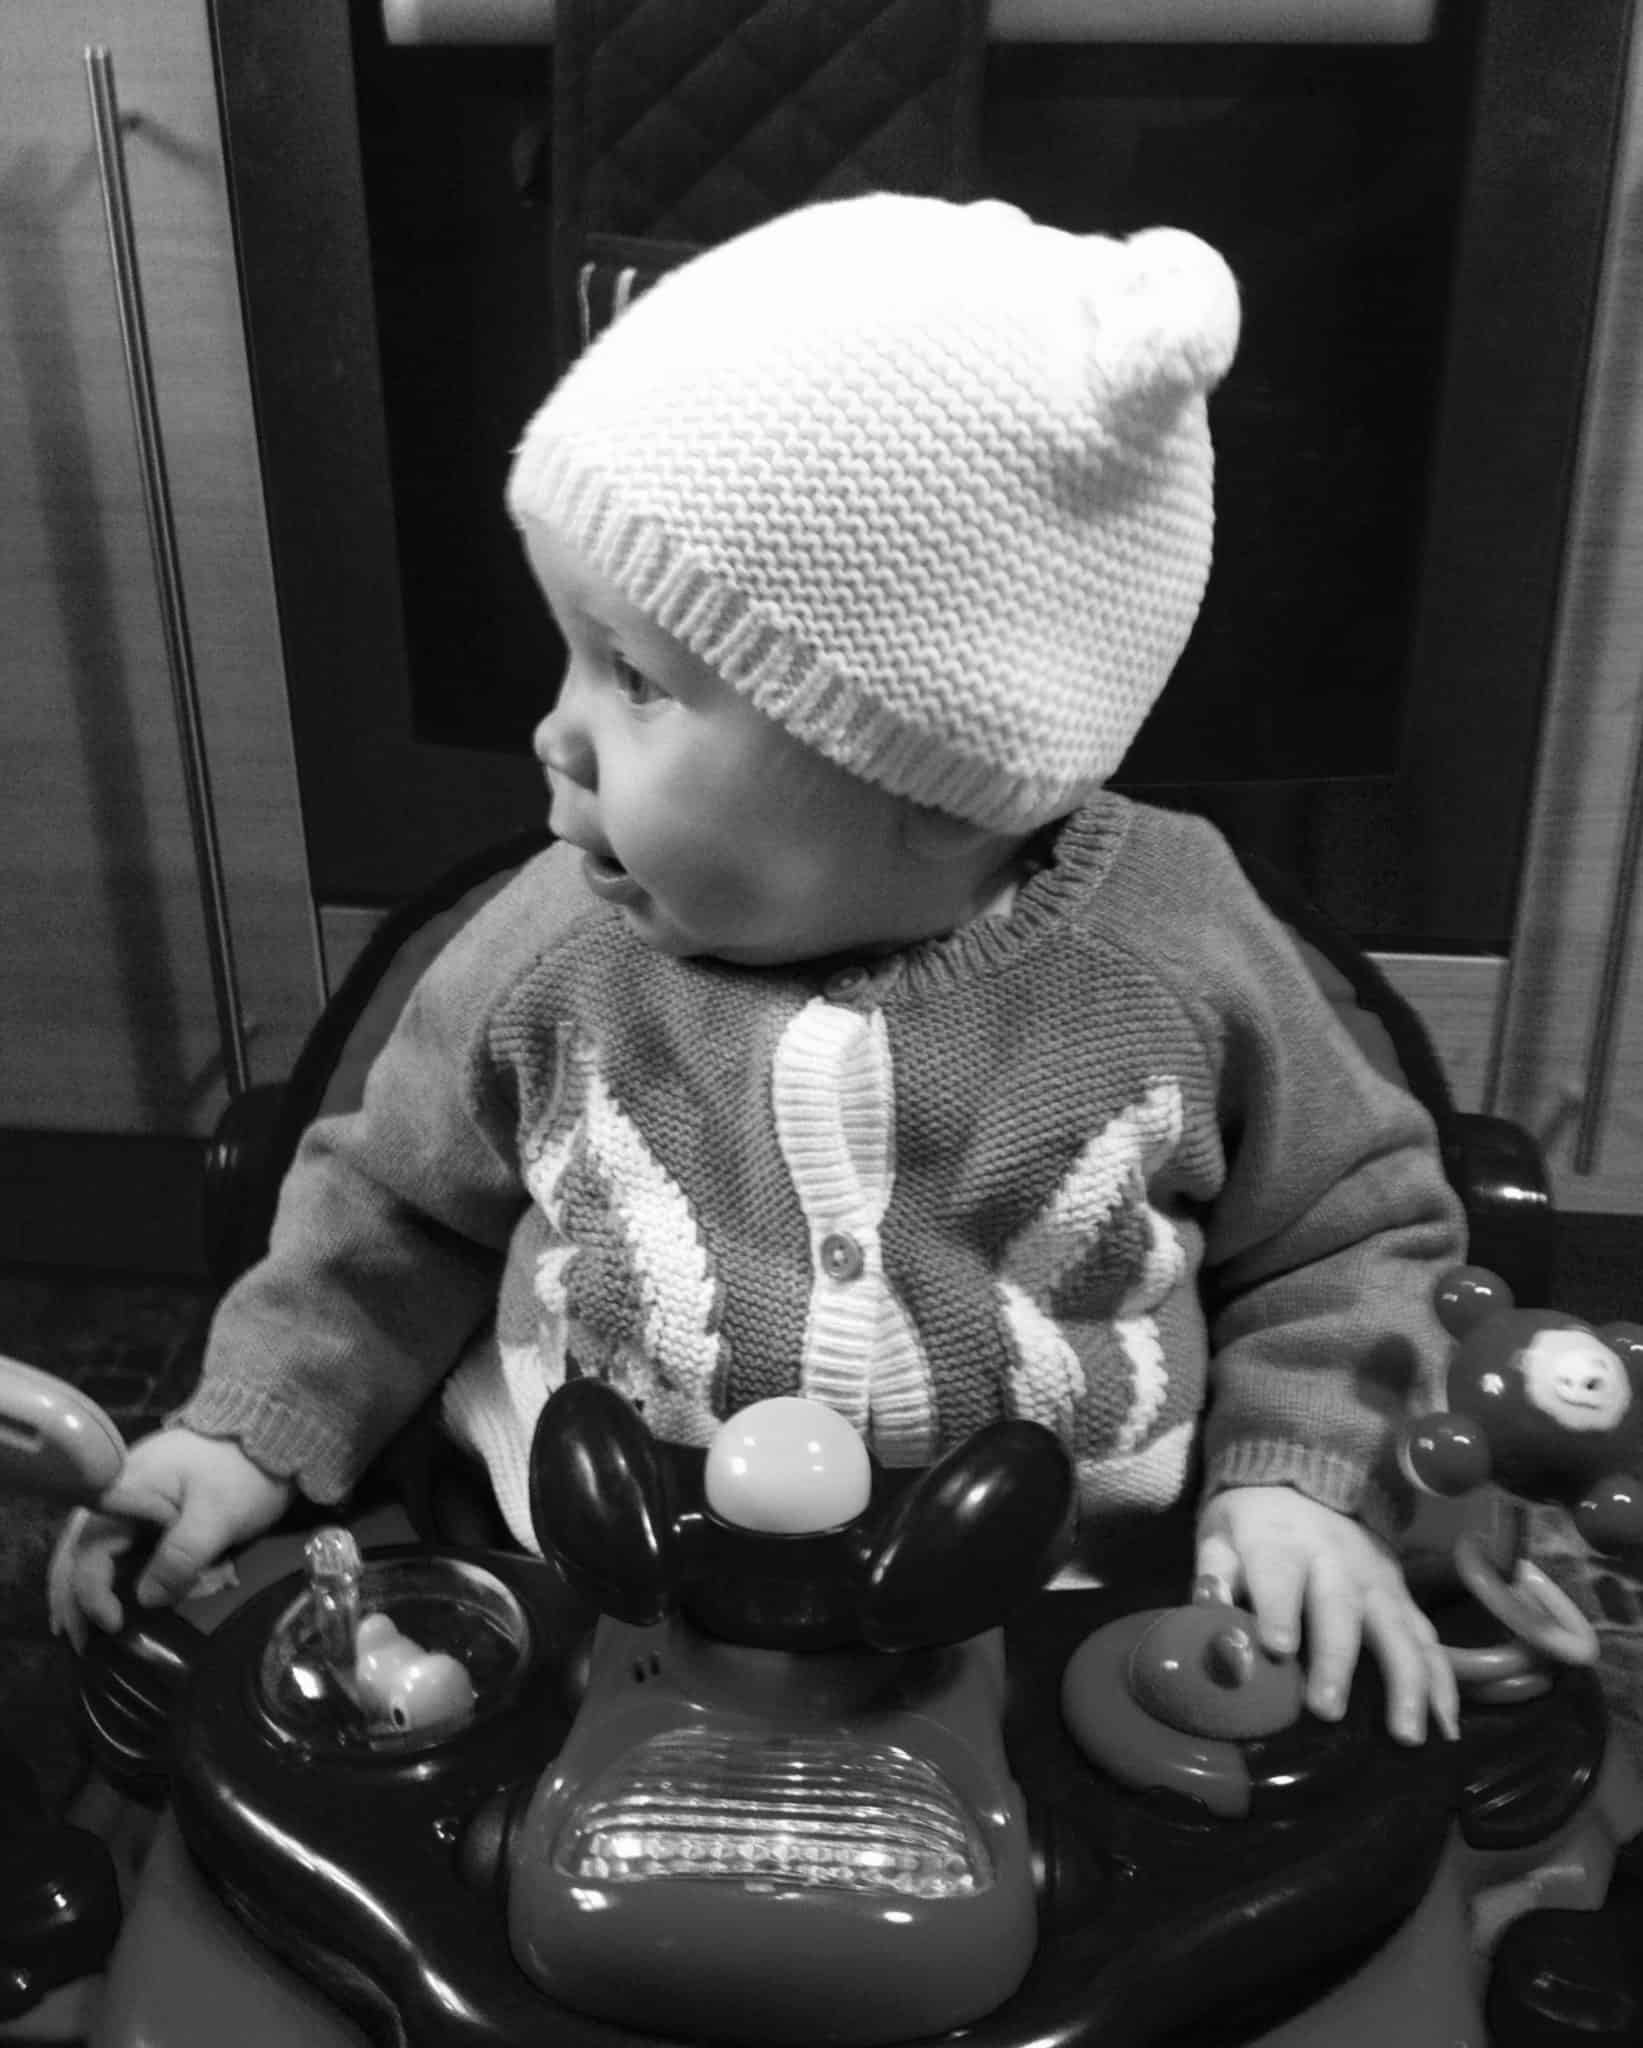 Baby girl all ready to go out with her woolly hat and cardi on